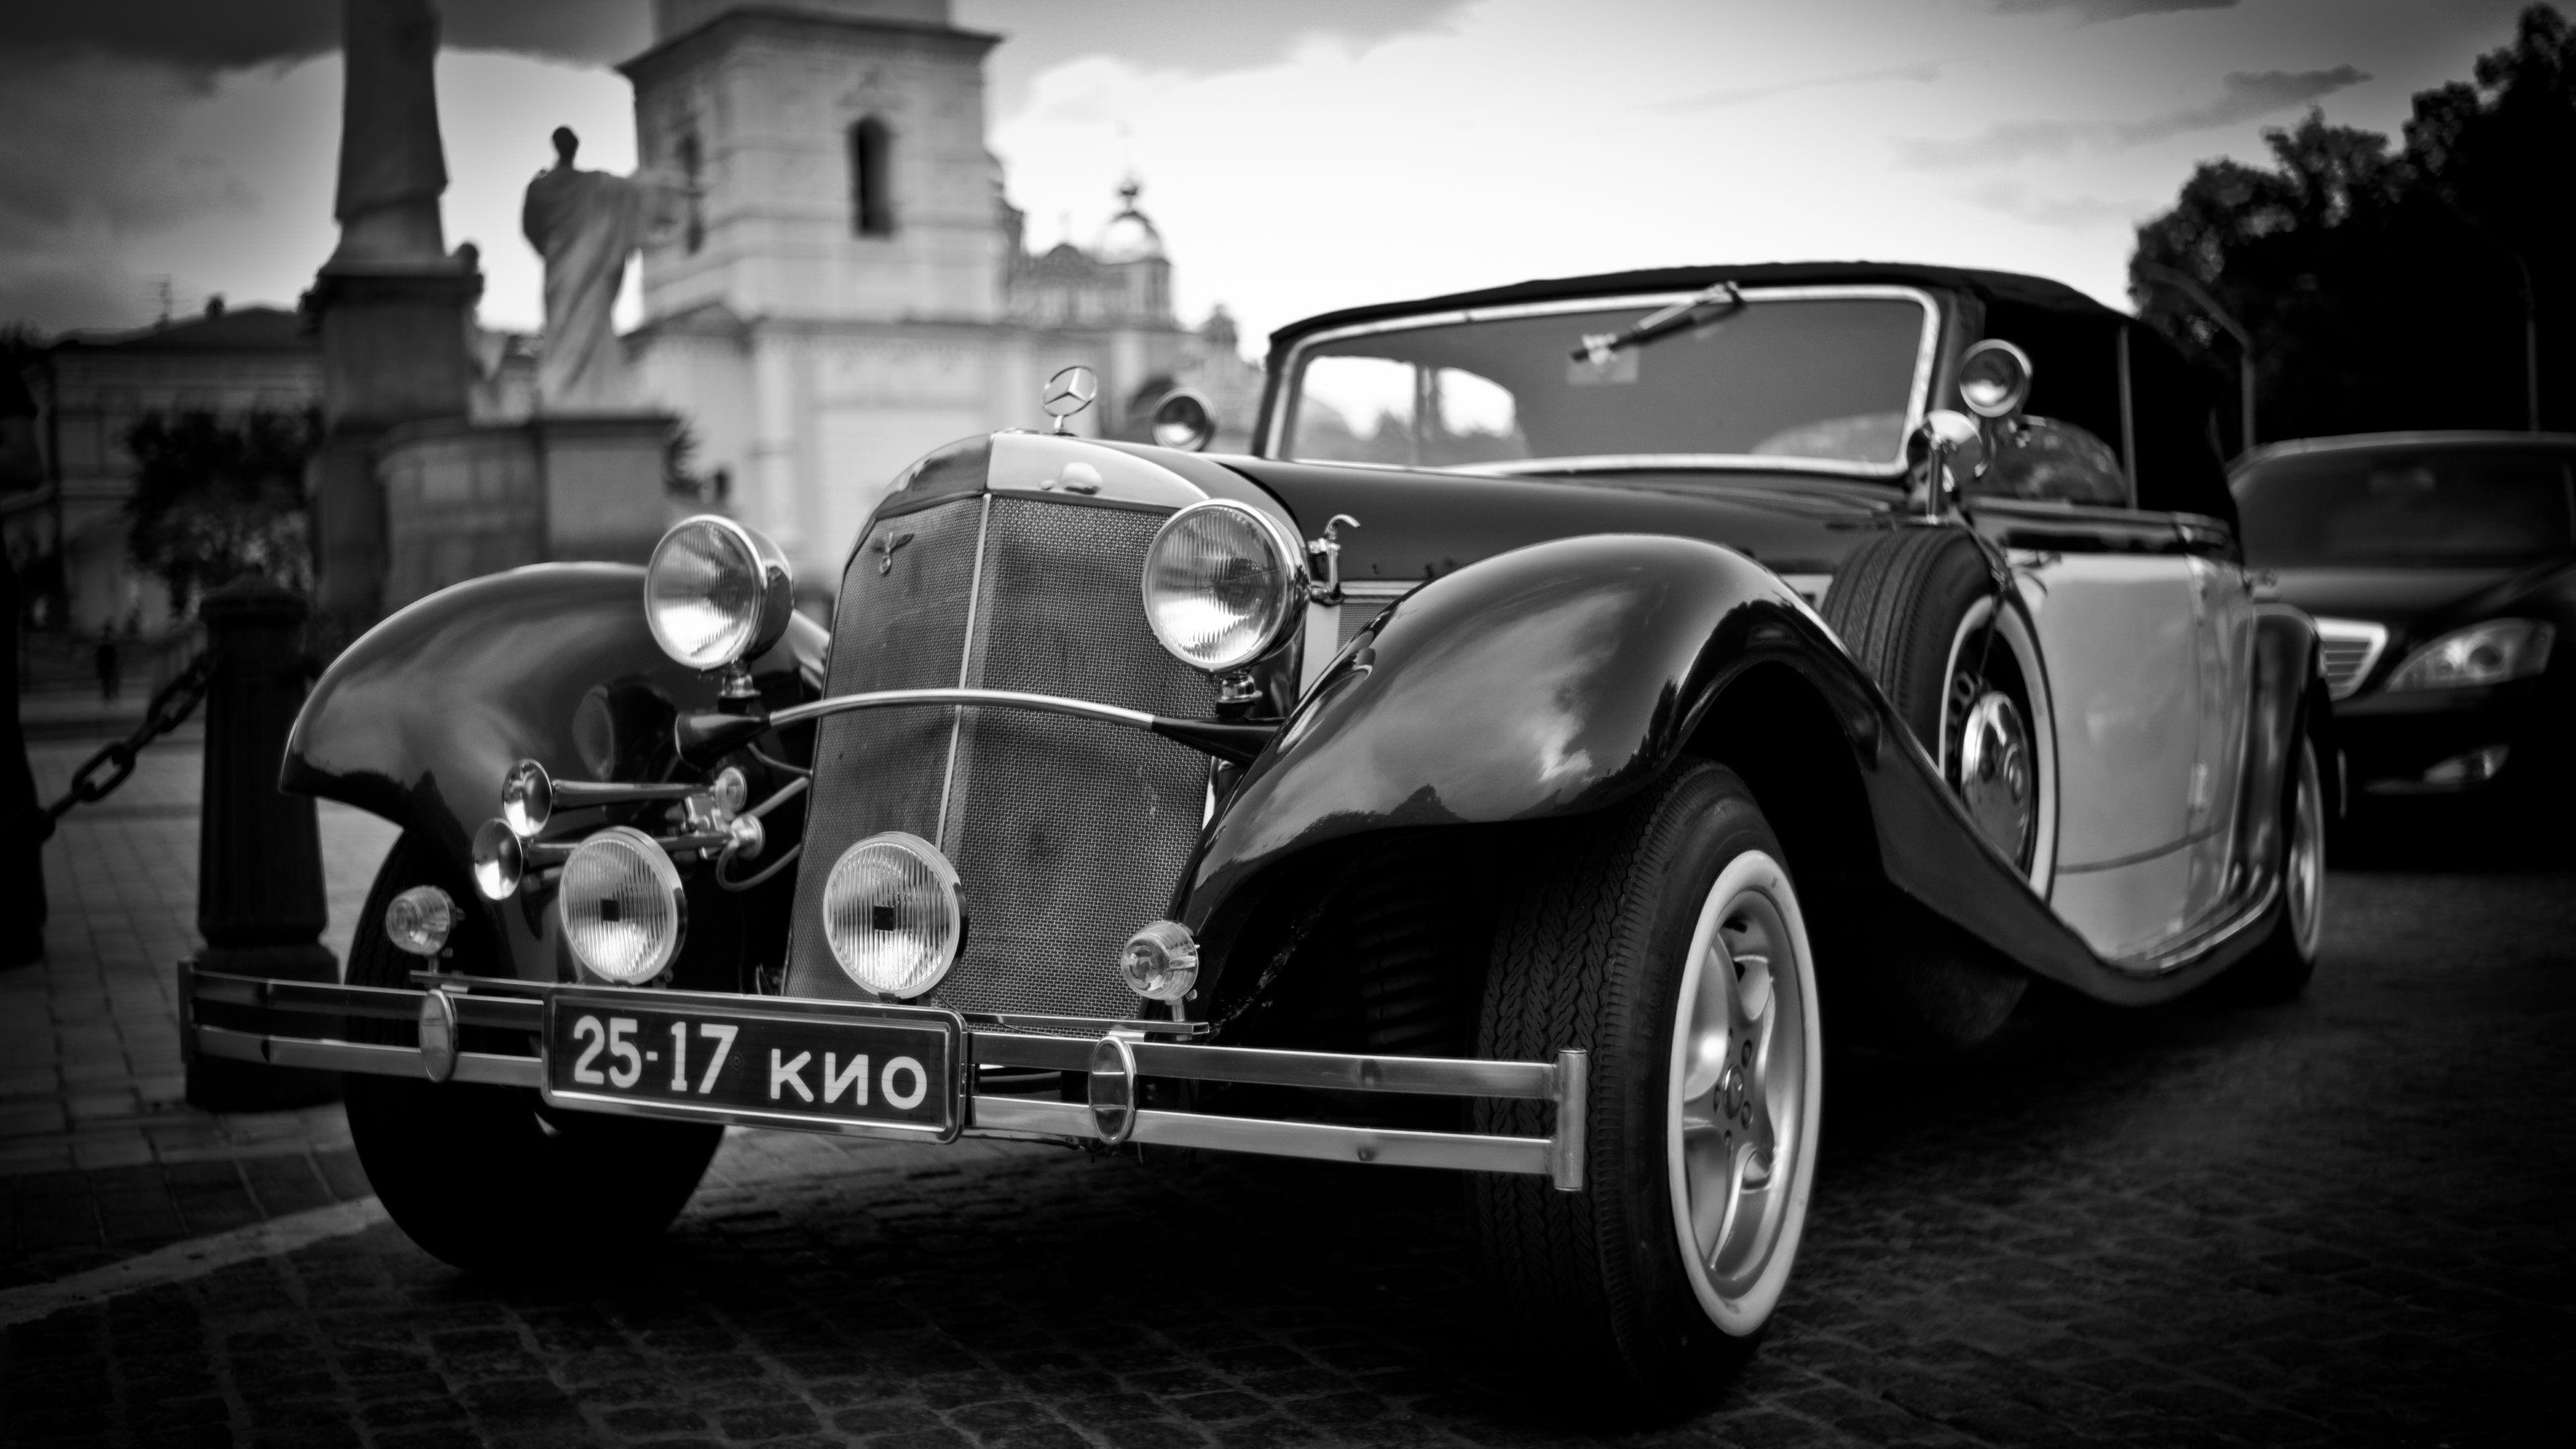 Vintage Cars Wallpapers Wallpaper Cave